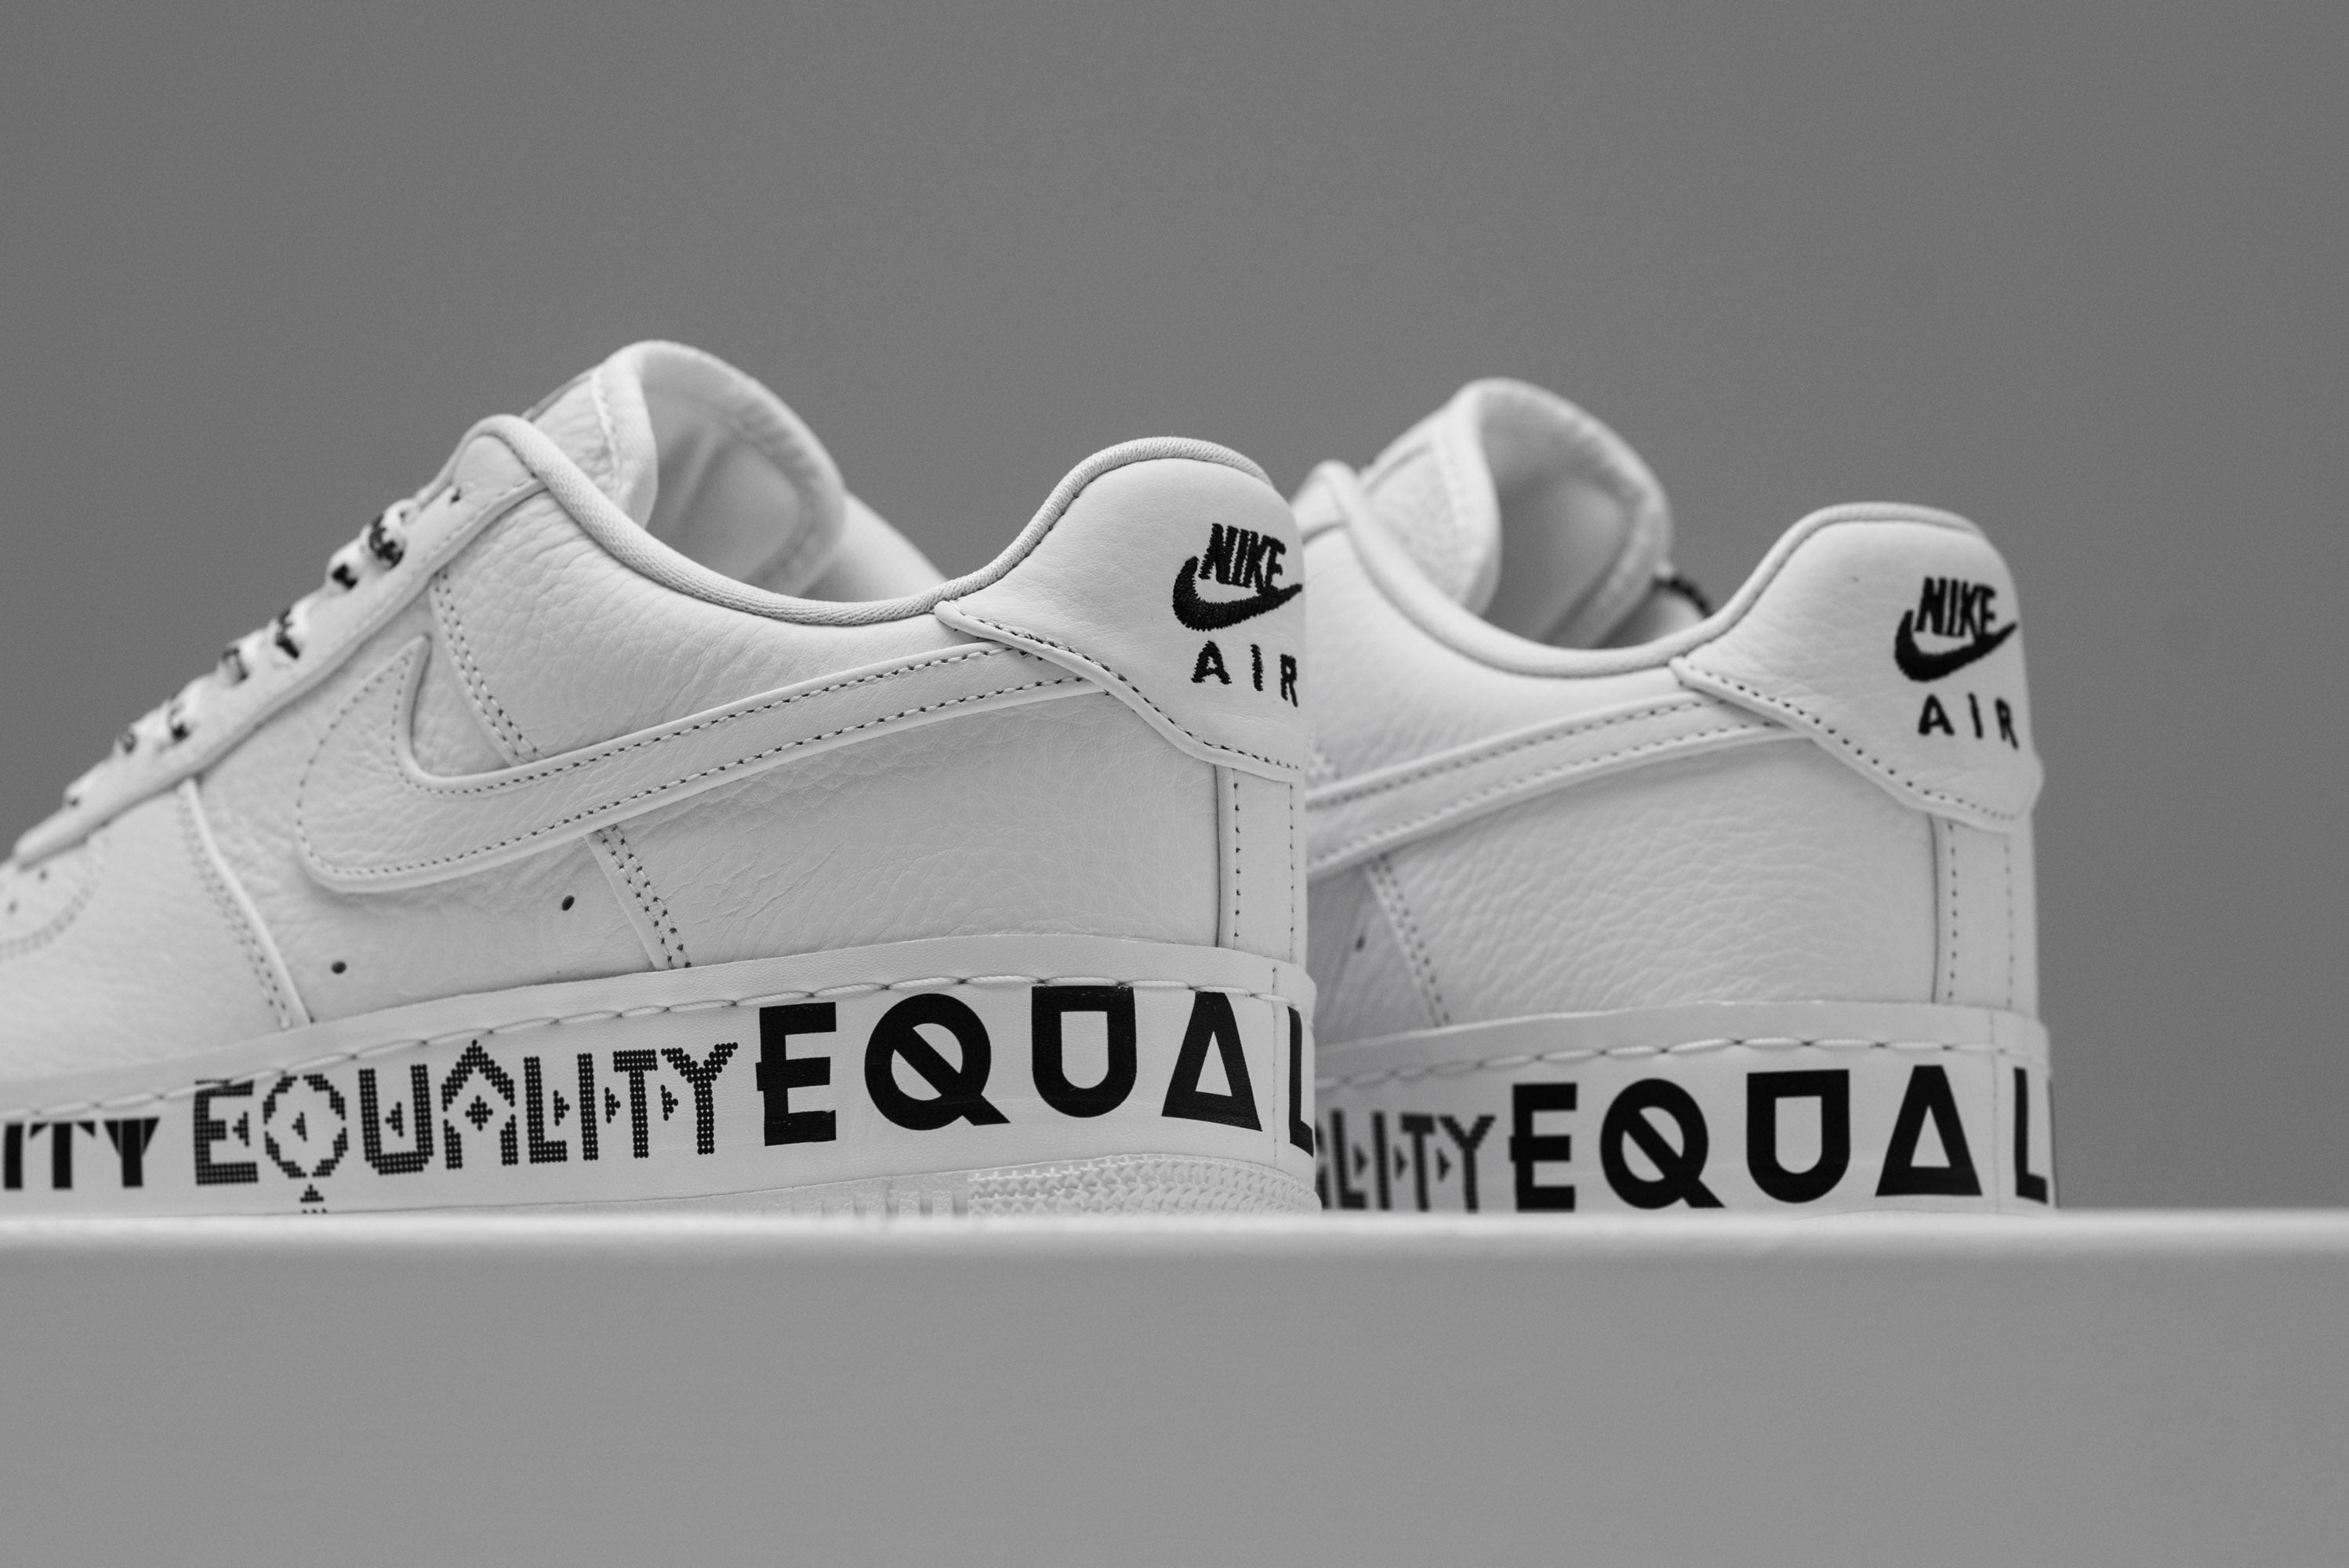 new product a3464 070a4 Nike Air Force 1 Low CMFT EQUALTY - White/Black